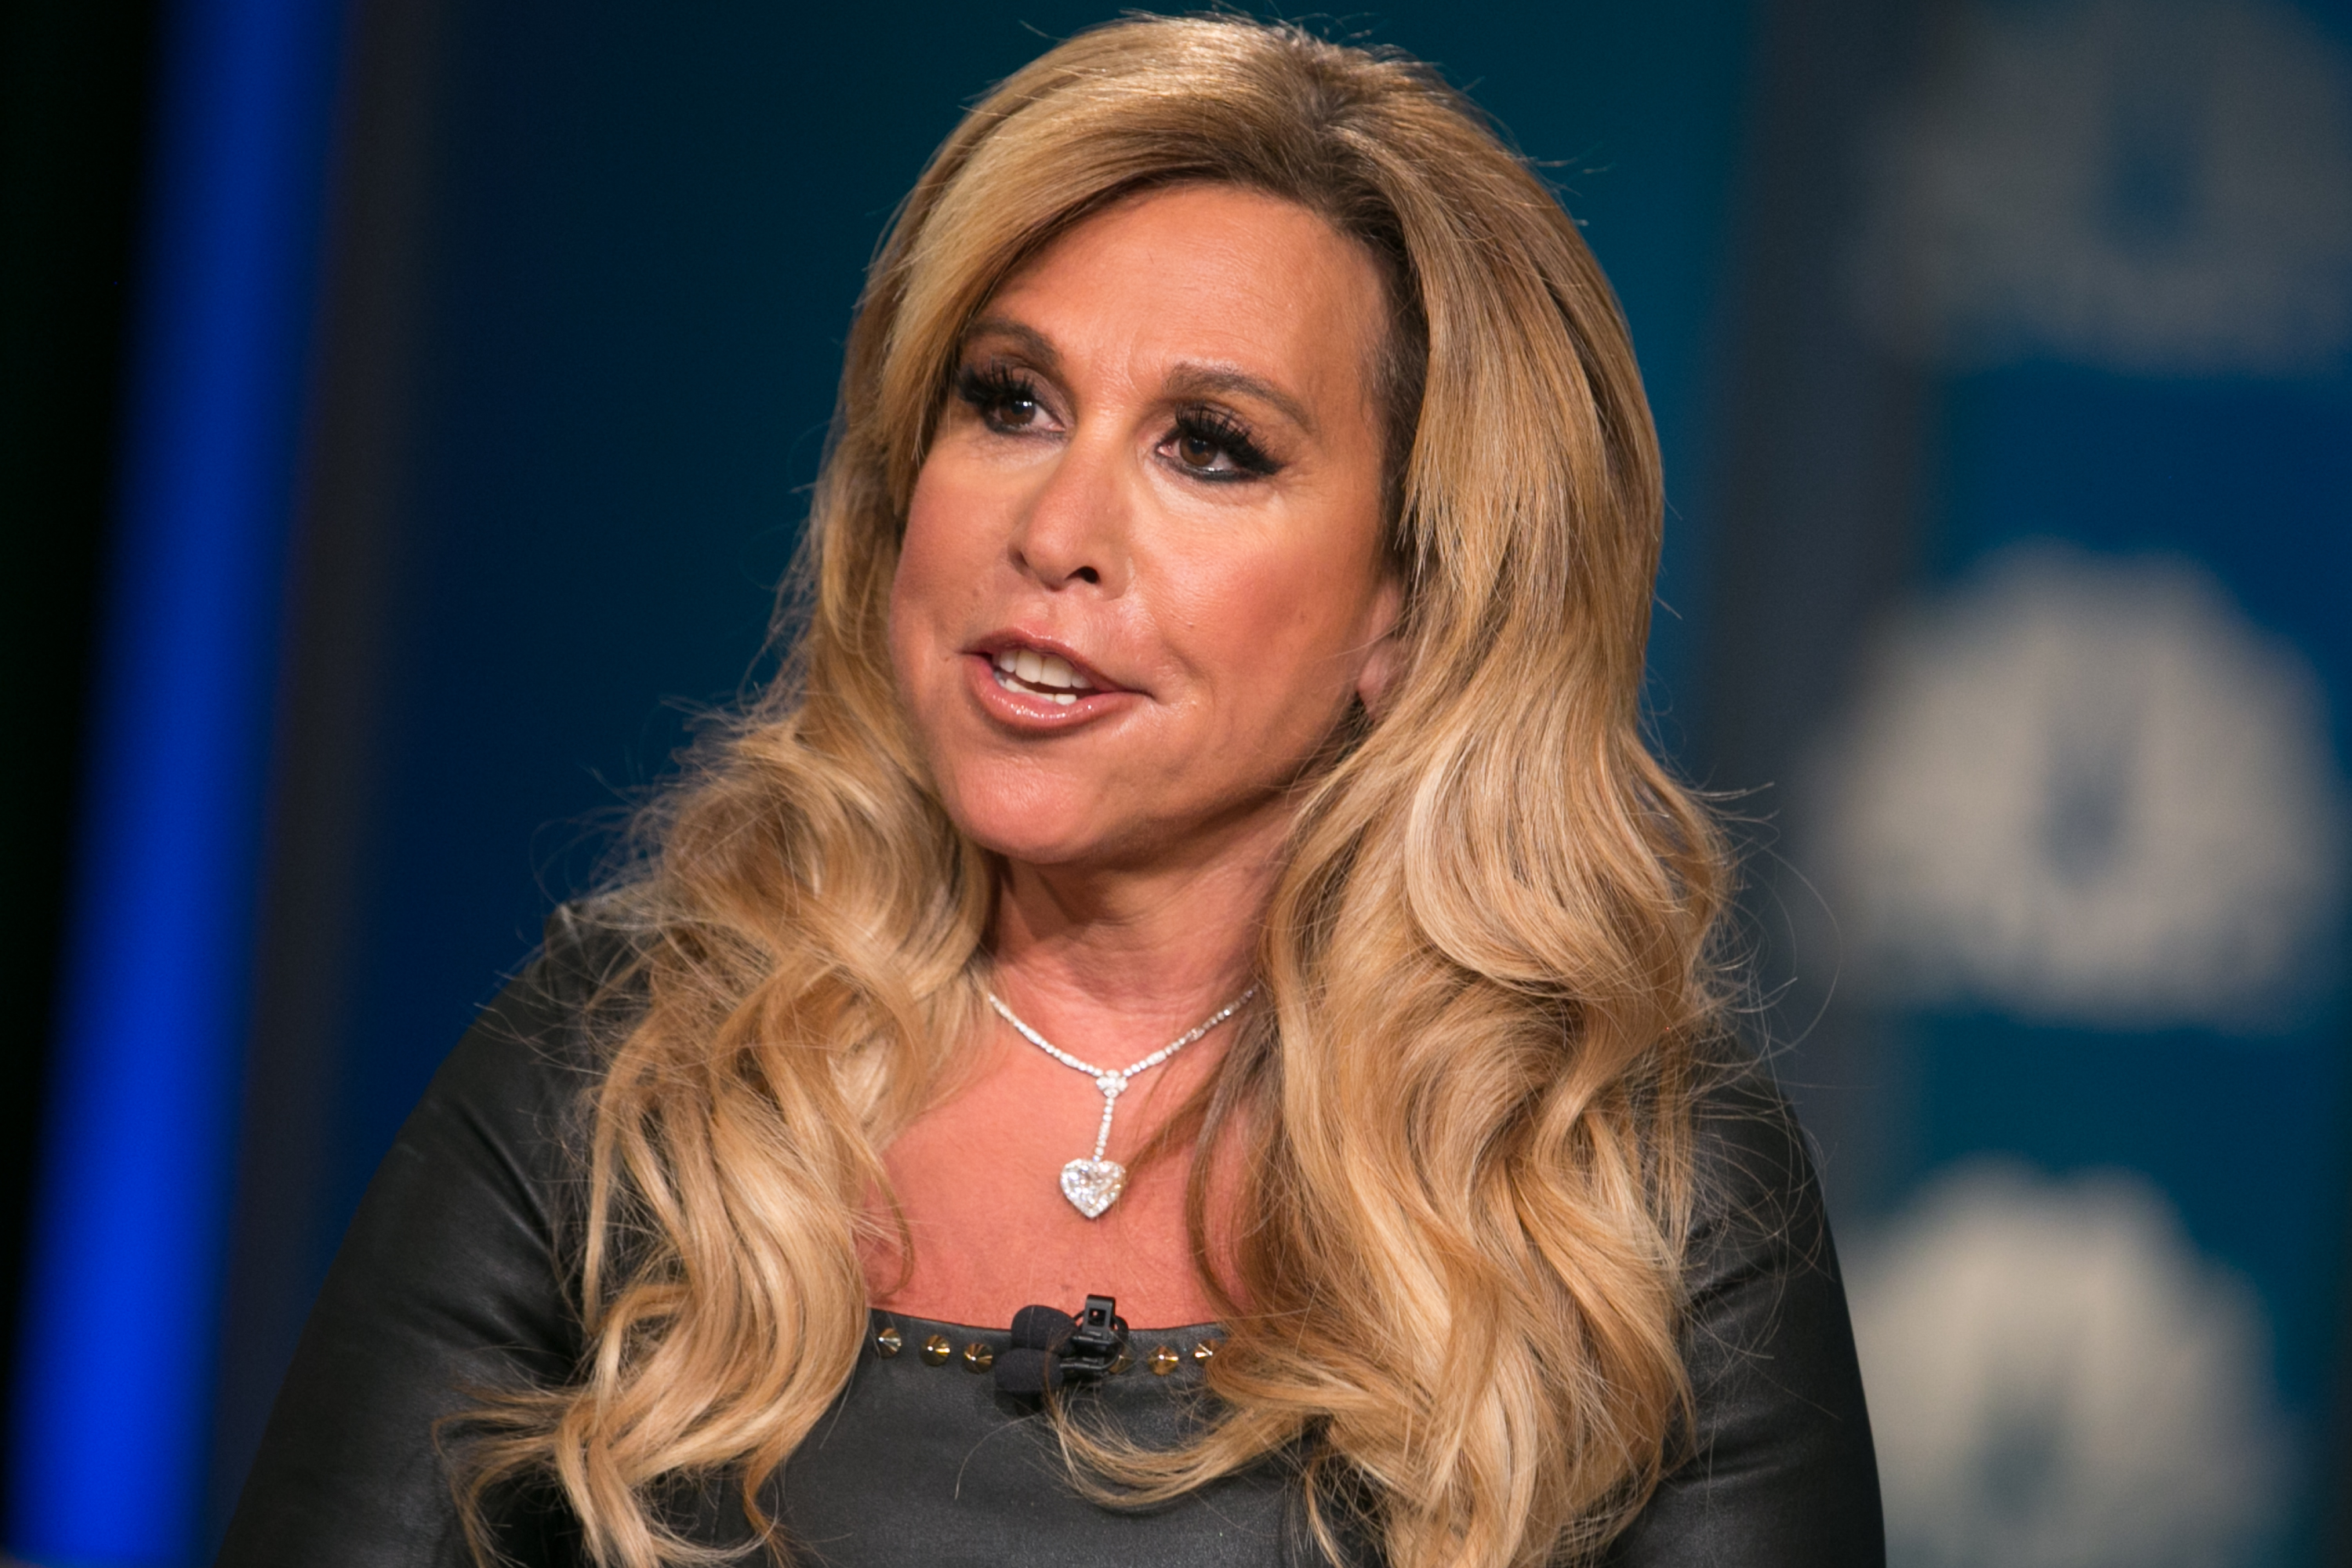 Lynn Tilton, business magnate, investor, and CEO of Patriarch Partners.